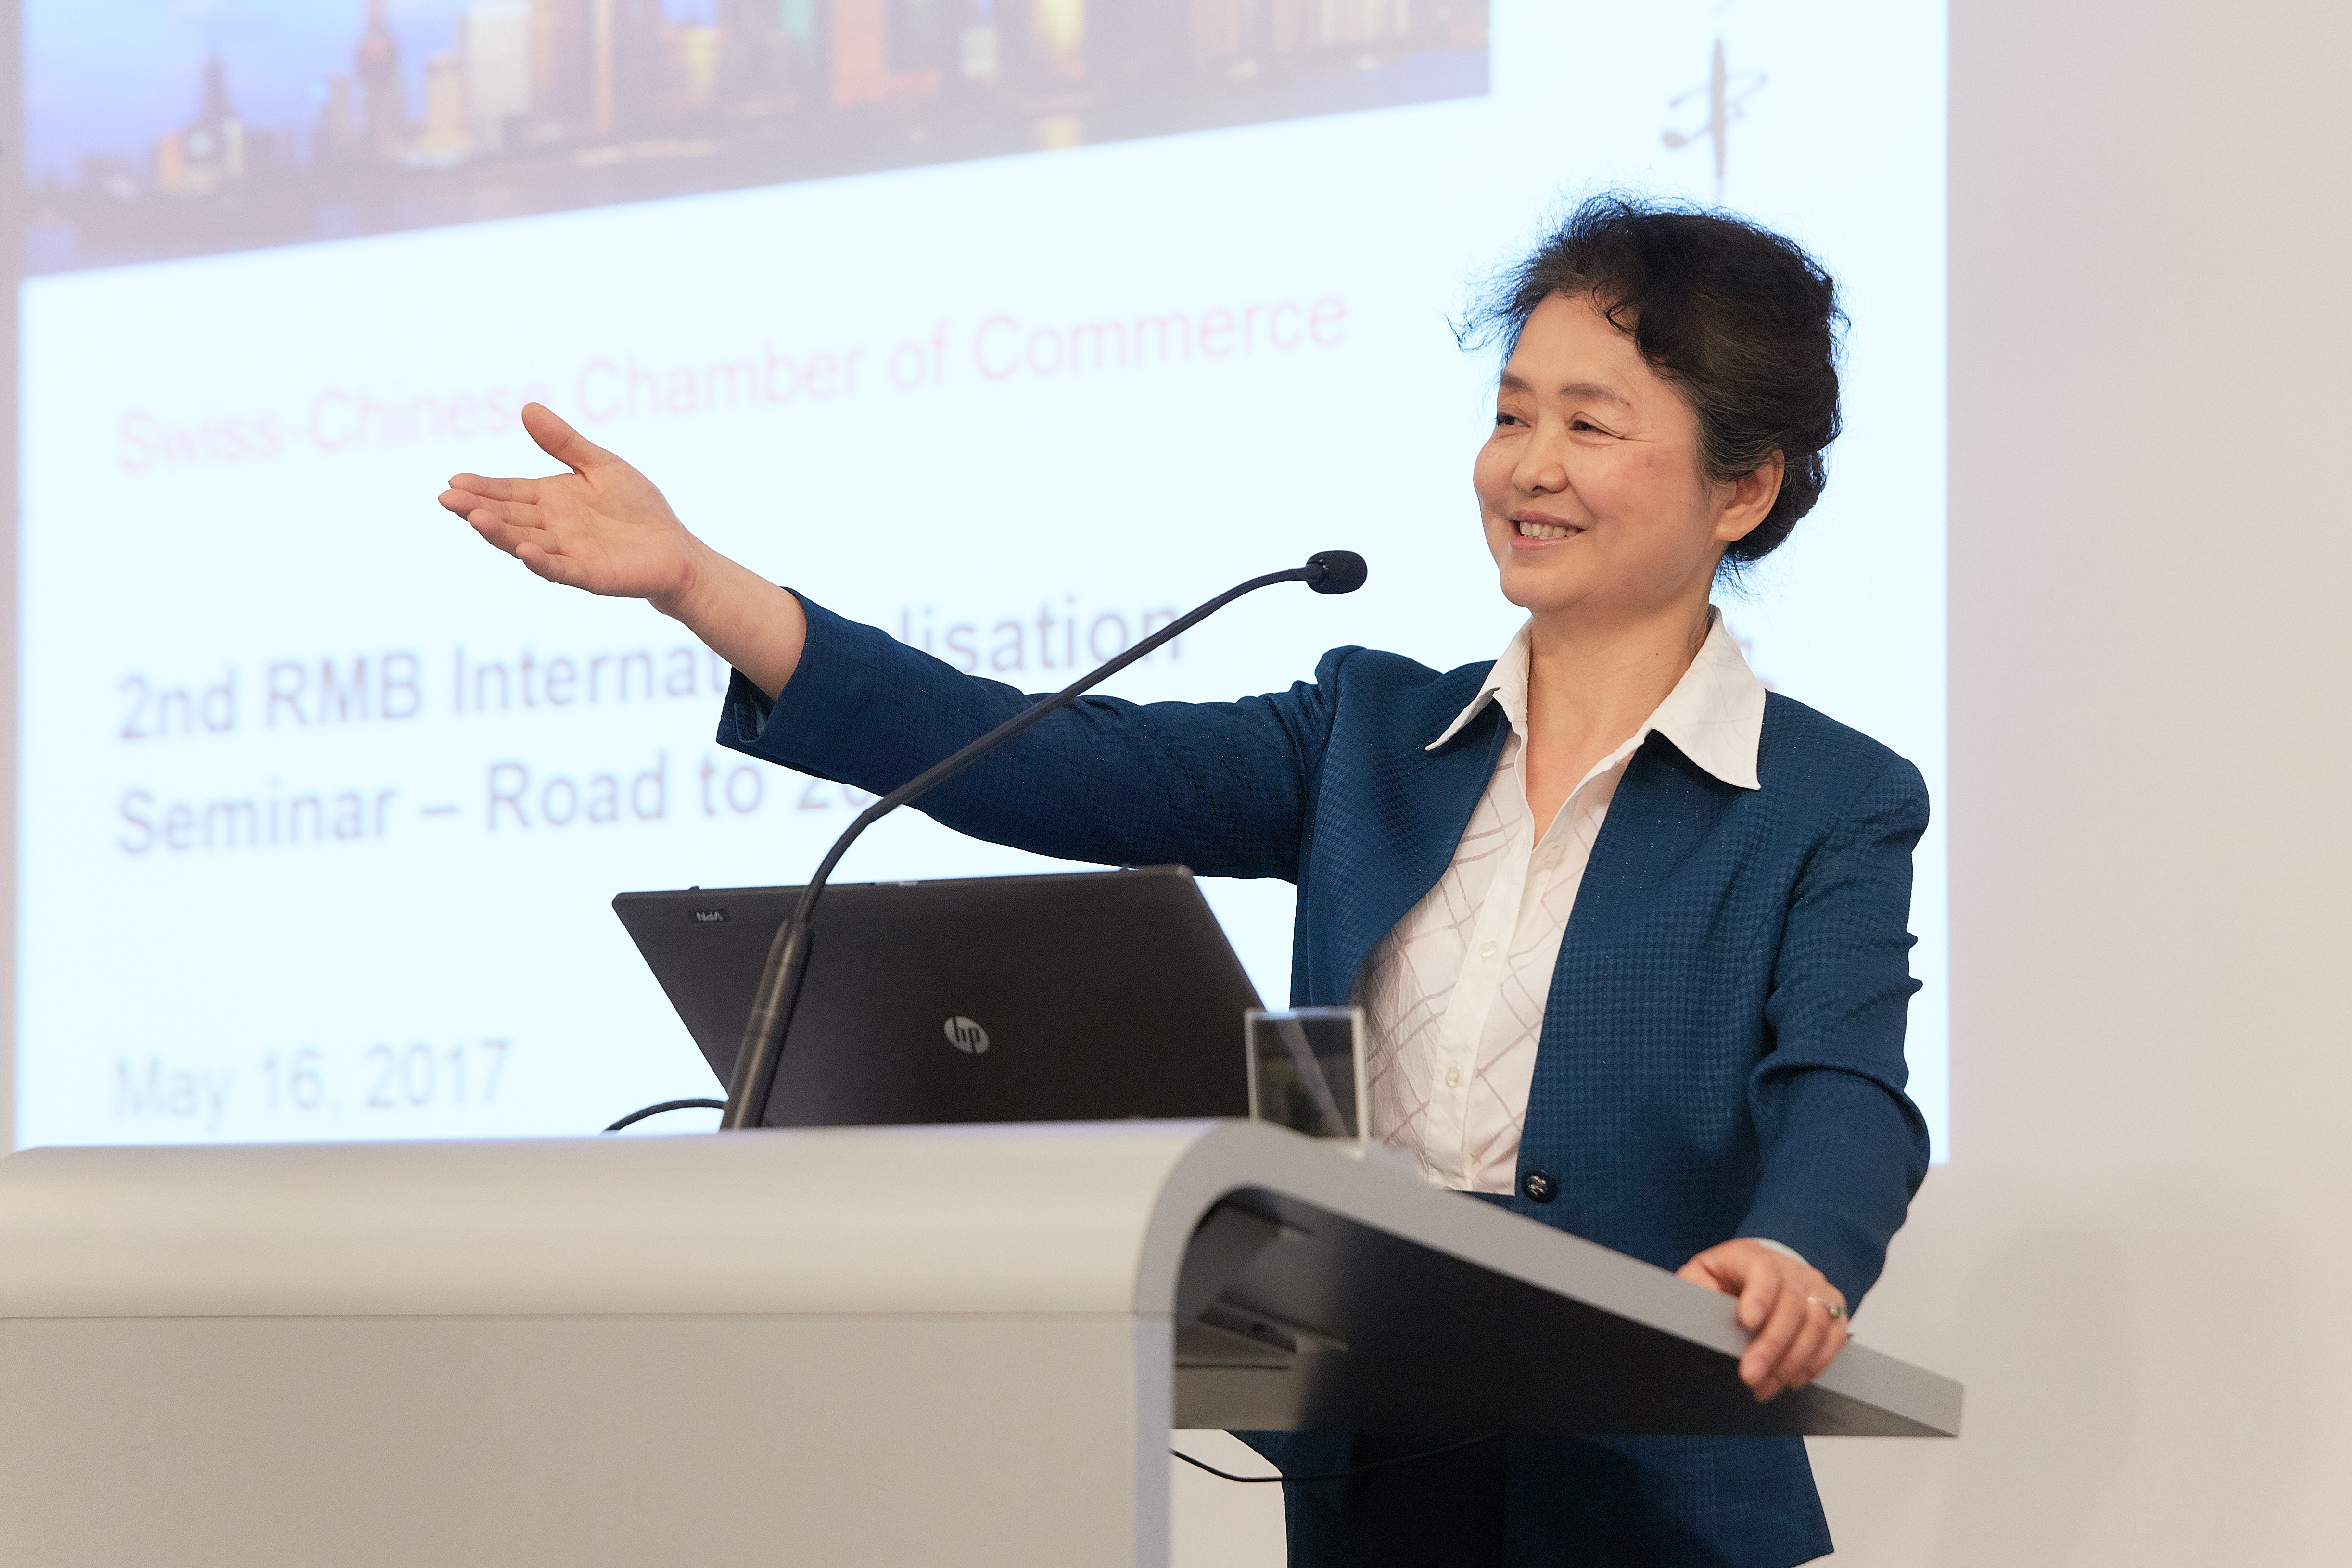 Official Welcome Address by Ms Ambassador GAO Consul General of PRC in Zurich and for Principality of Liechtenstein  RMB Internationalization – Road to 2020 is an Event of the Swiss-Chinese Chamber of Commerce www.sccc.ch  Foto: © 2017 by partners in GmbH · Stefan Weiss · www.partnersingmbh.ch